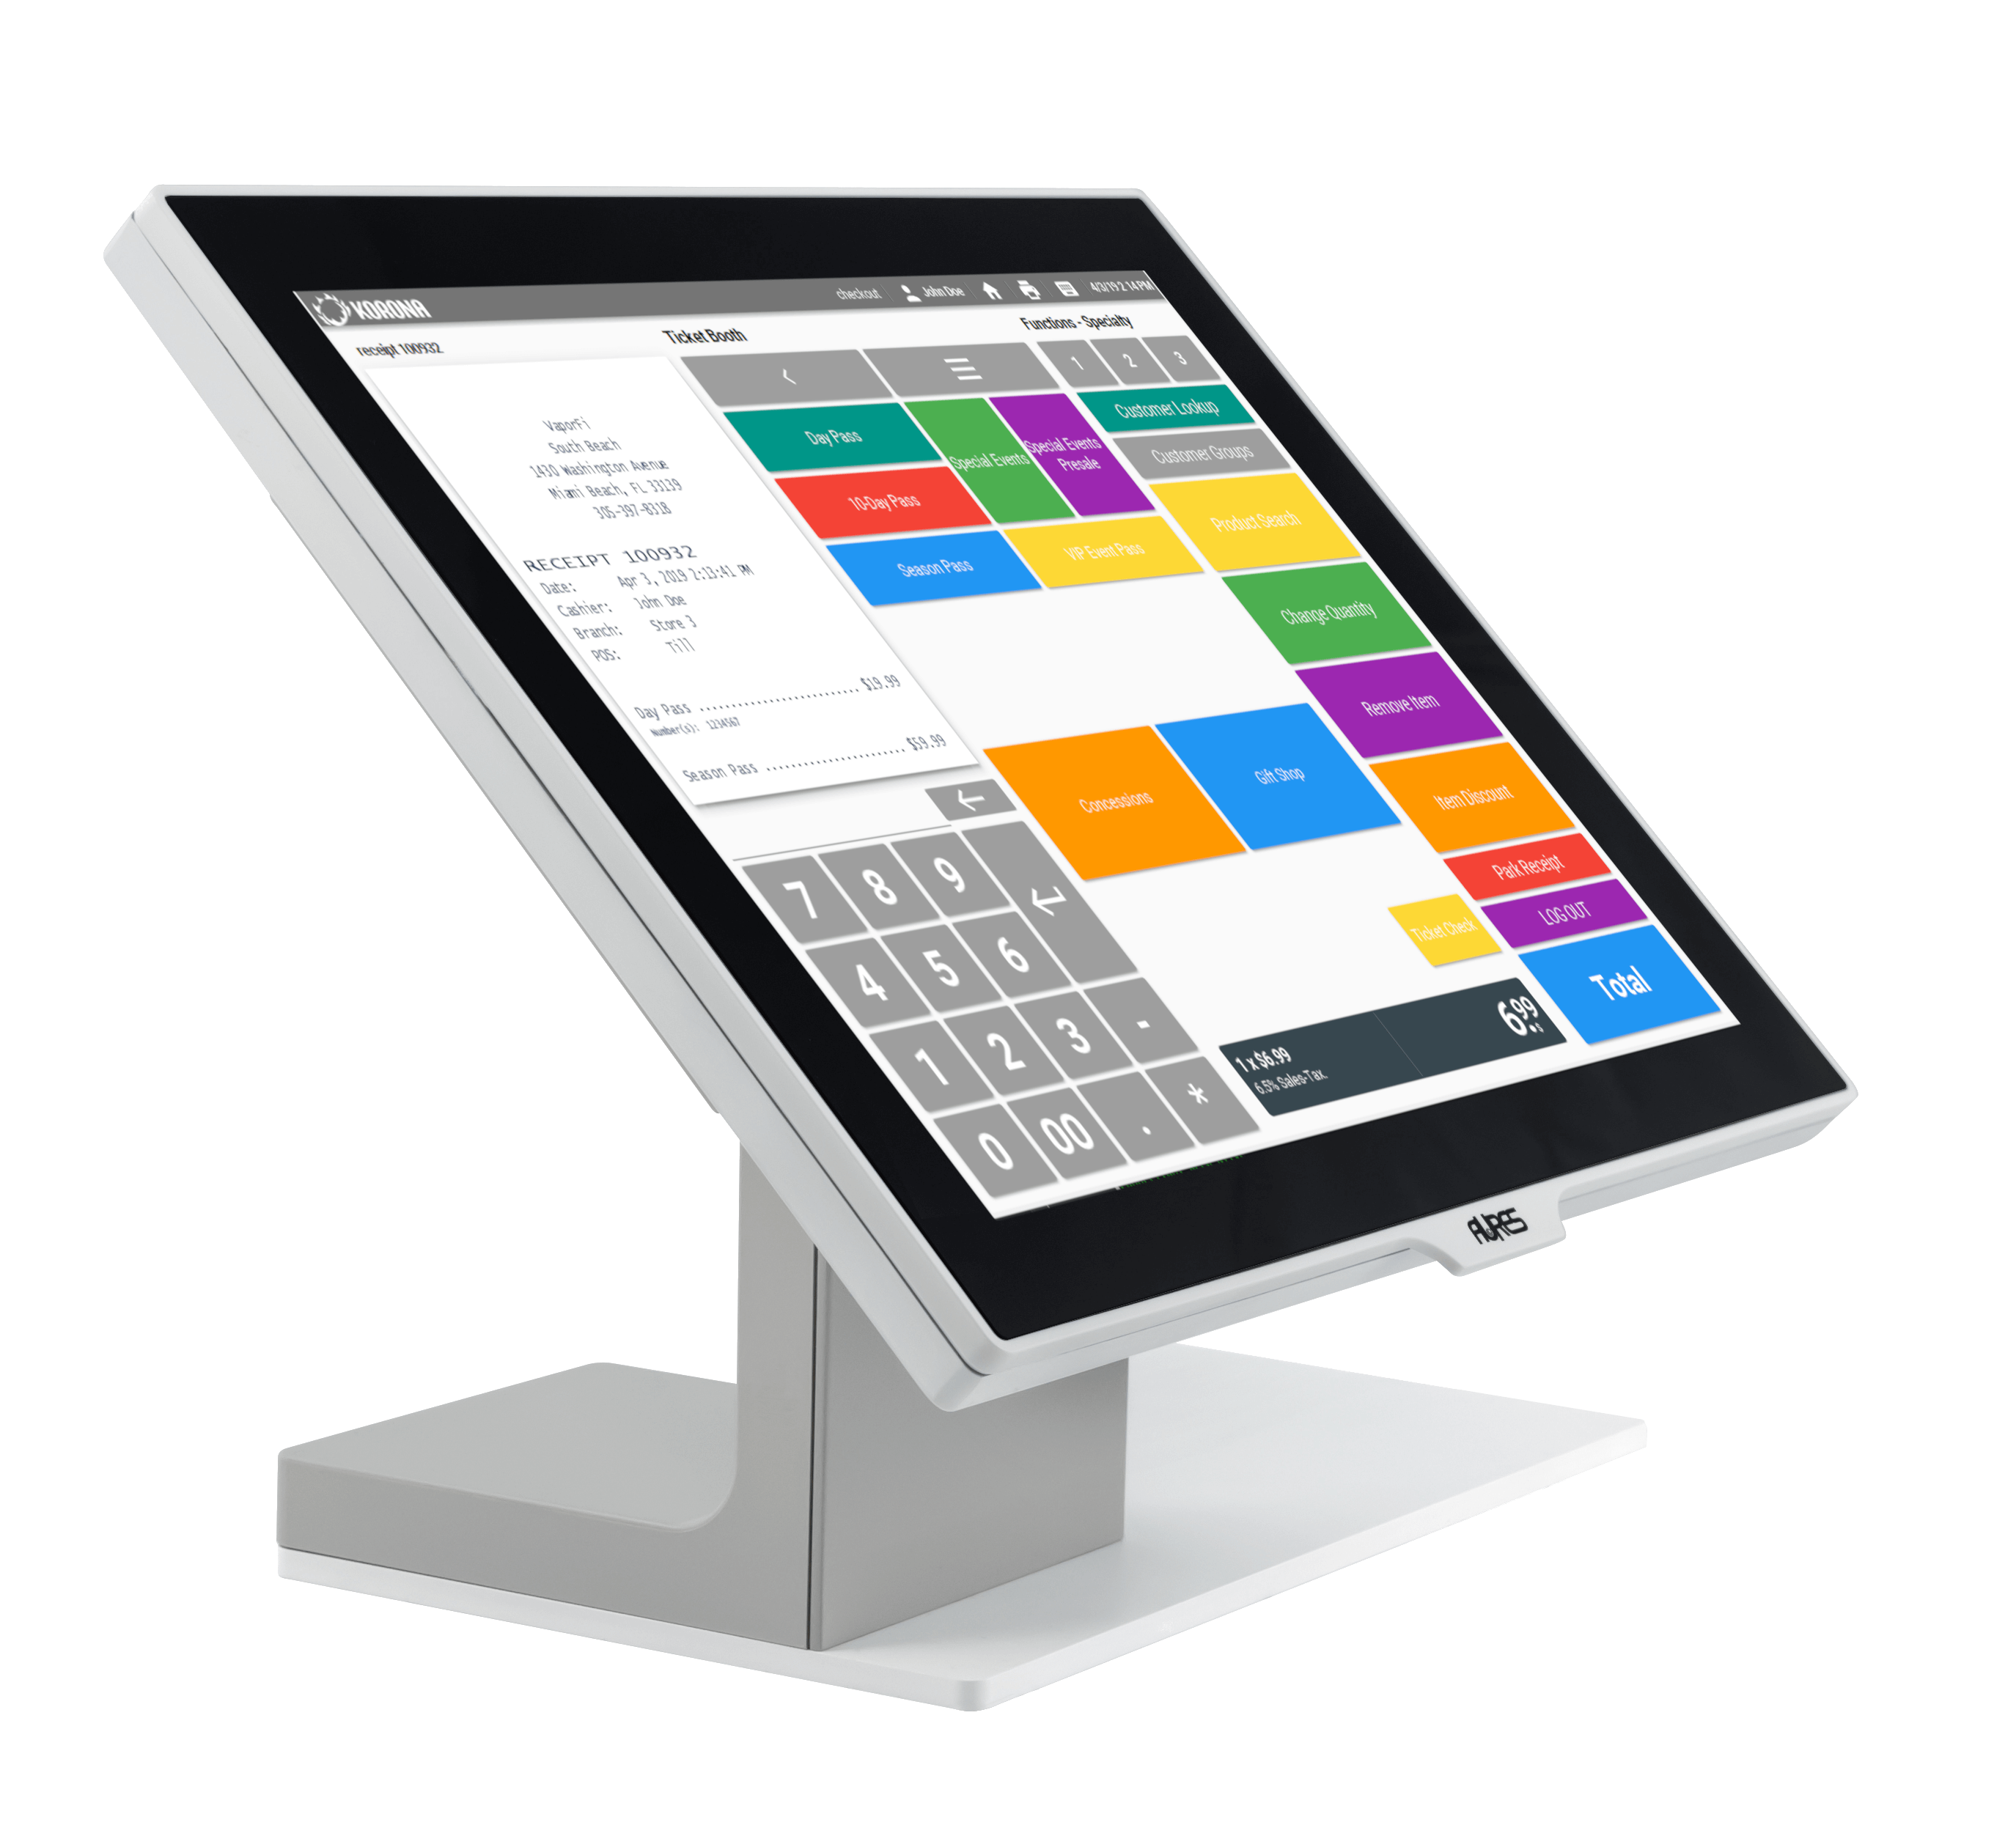 A gift shop POS system desktop hardware with homescreen for cashiers